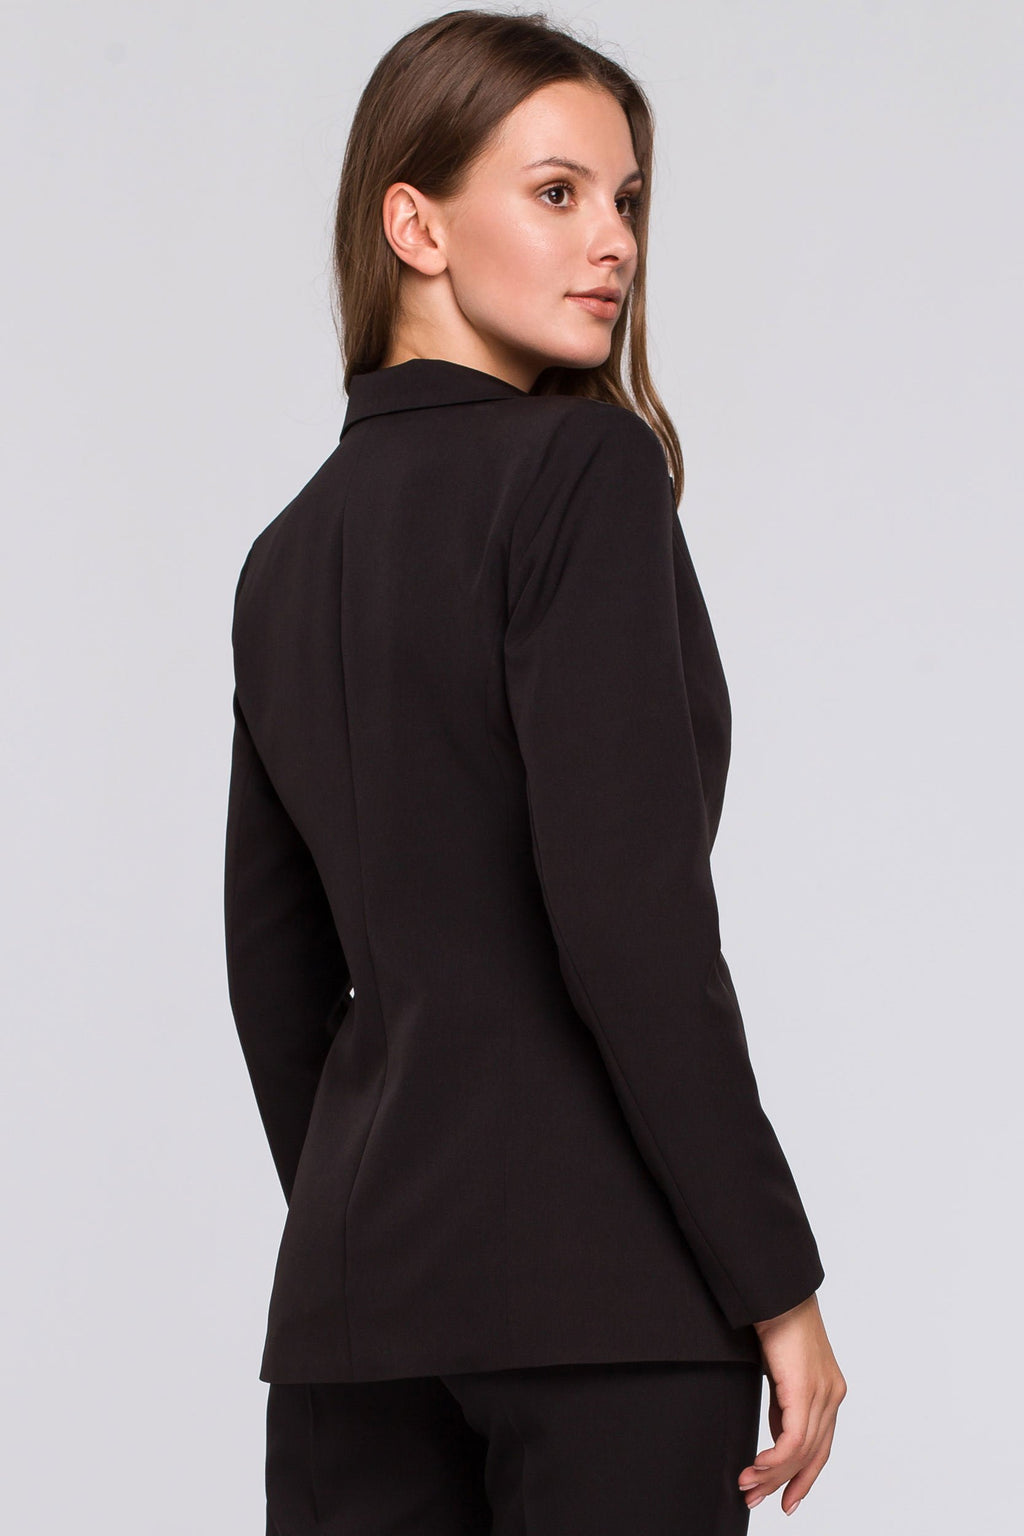 Single Button Black Blazer - So Chic Boutique